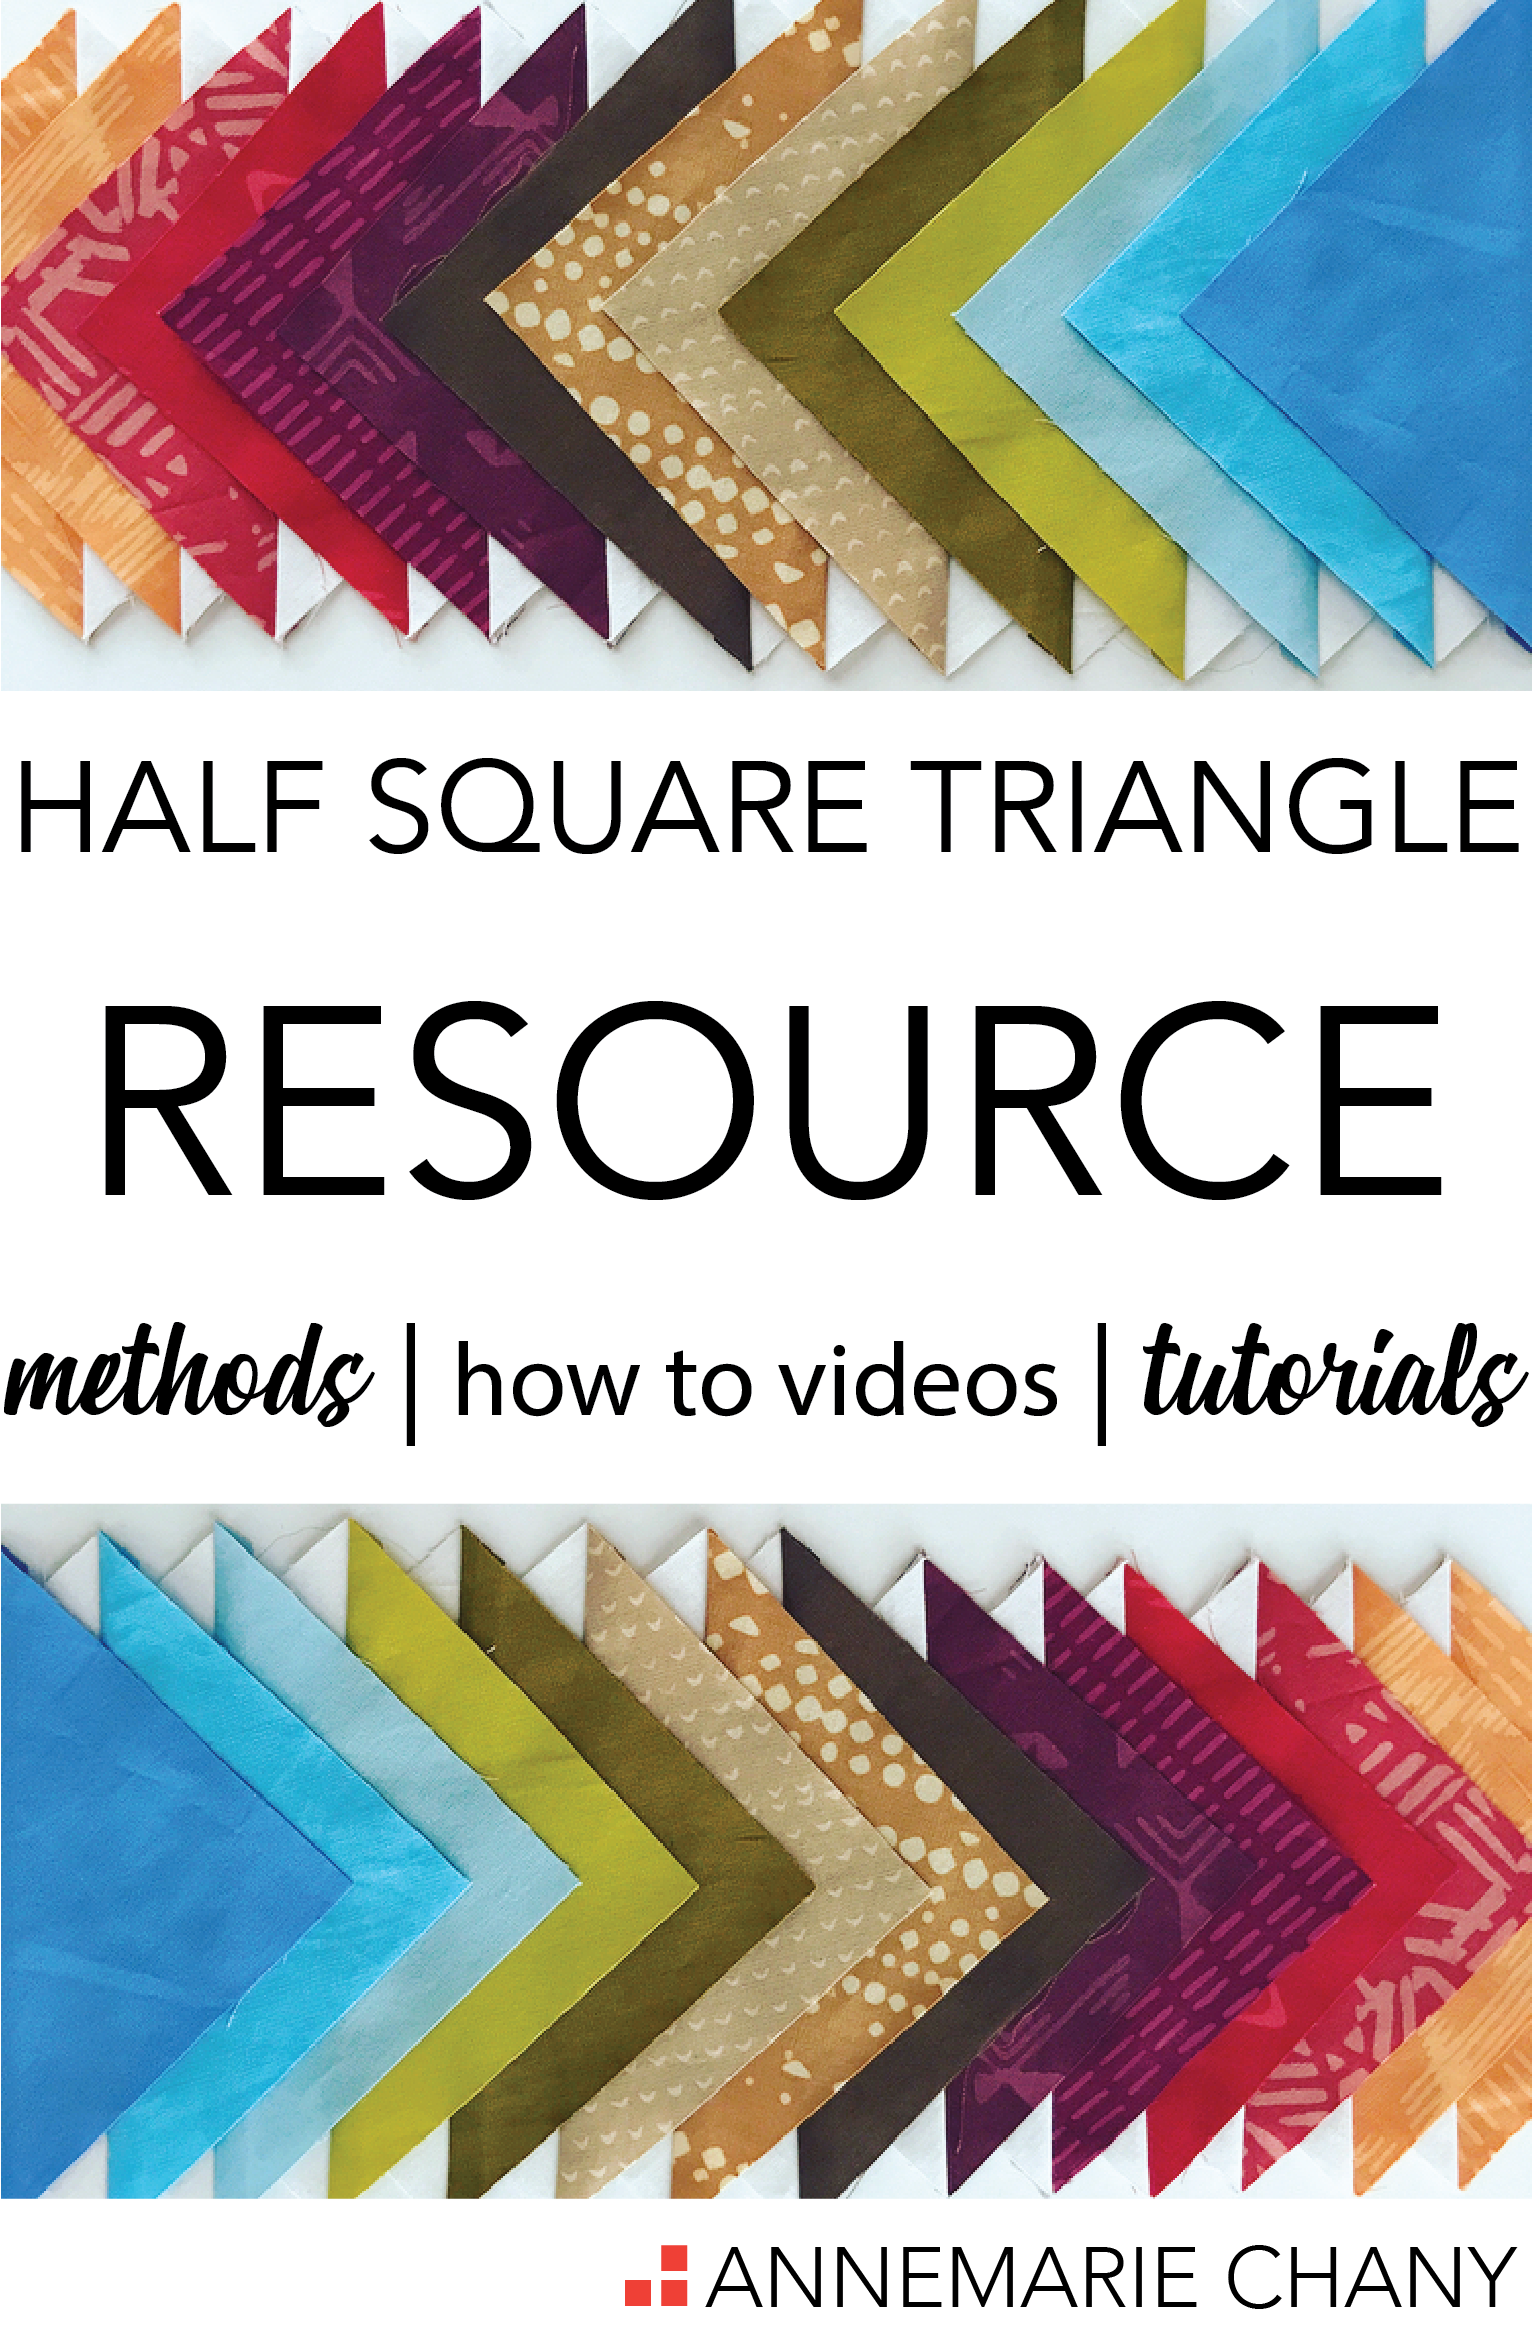 Half Square Triangle Resource Methods Video Tutorials.png